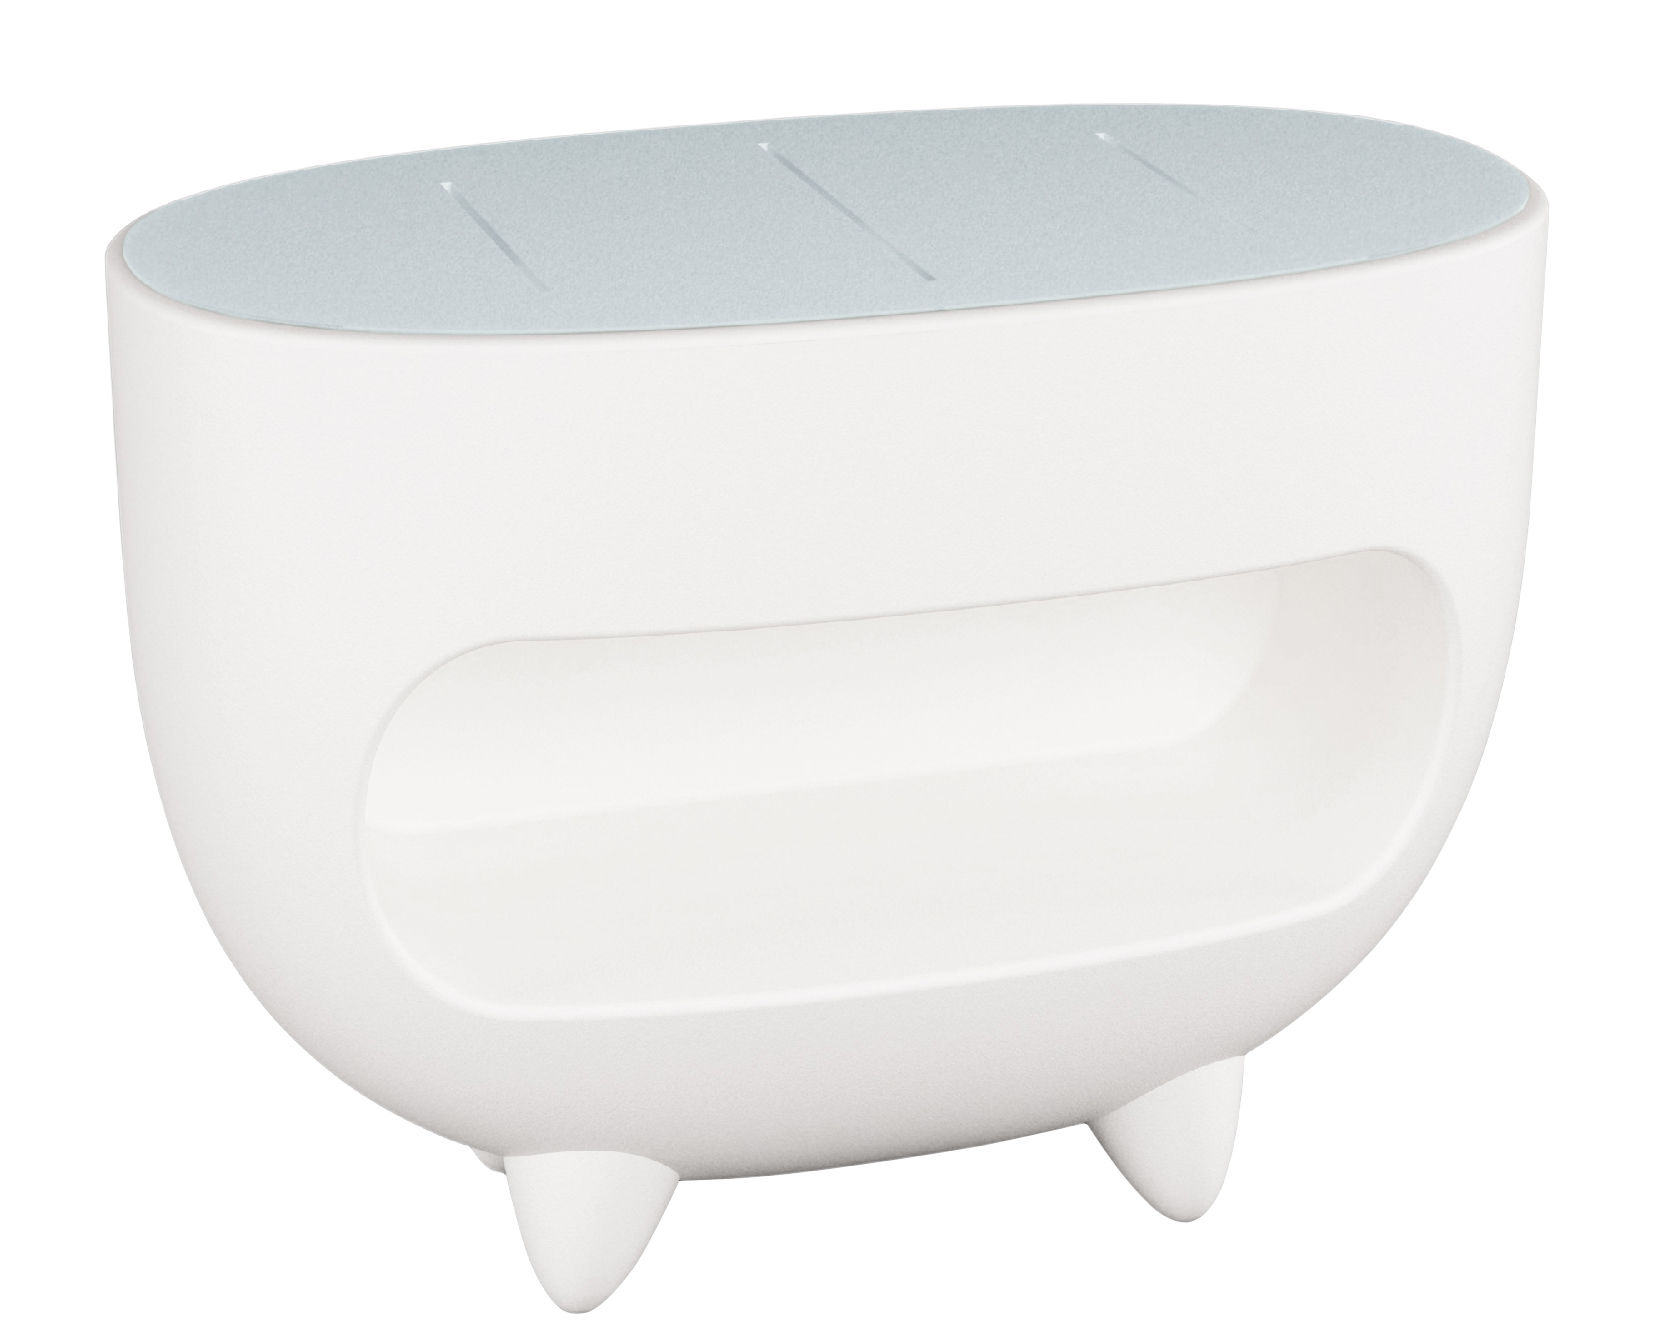 Furniture - Illuminated Furniture & Light UP Tables - Splay Luminous counter by Slide - White - Recyclable polyethylene, Soak glass